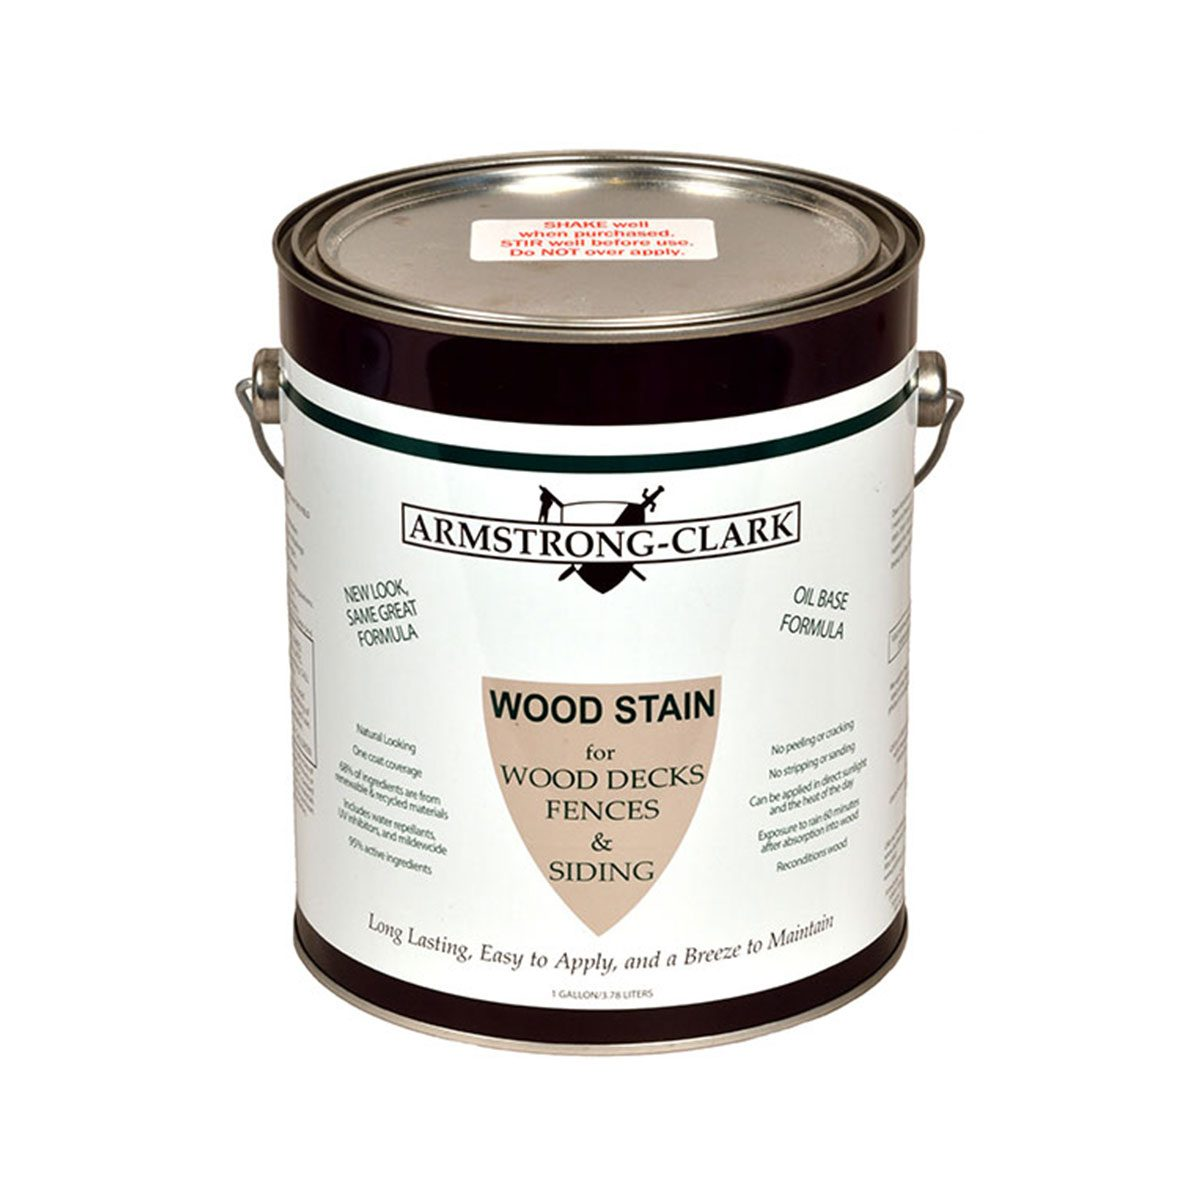 Can of Armstrong-Clark wood stain